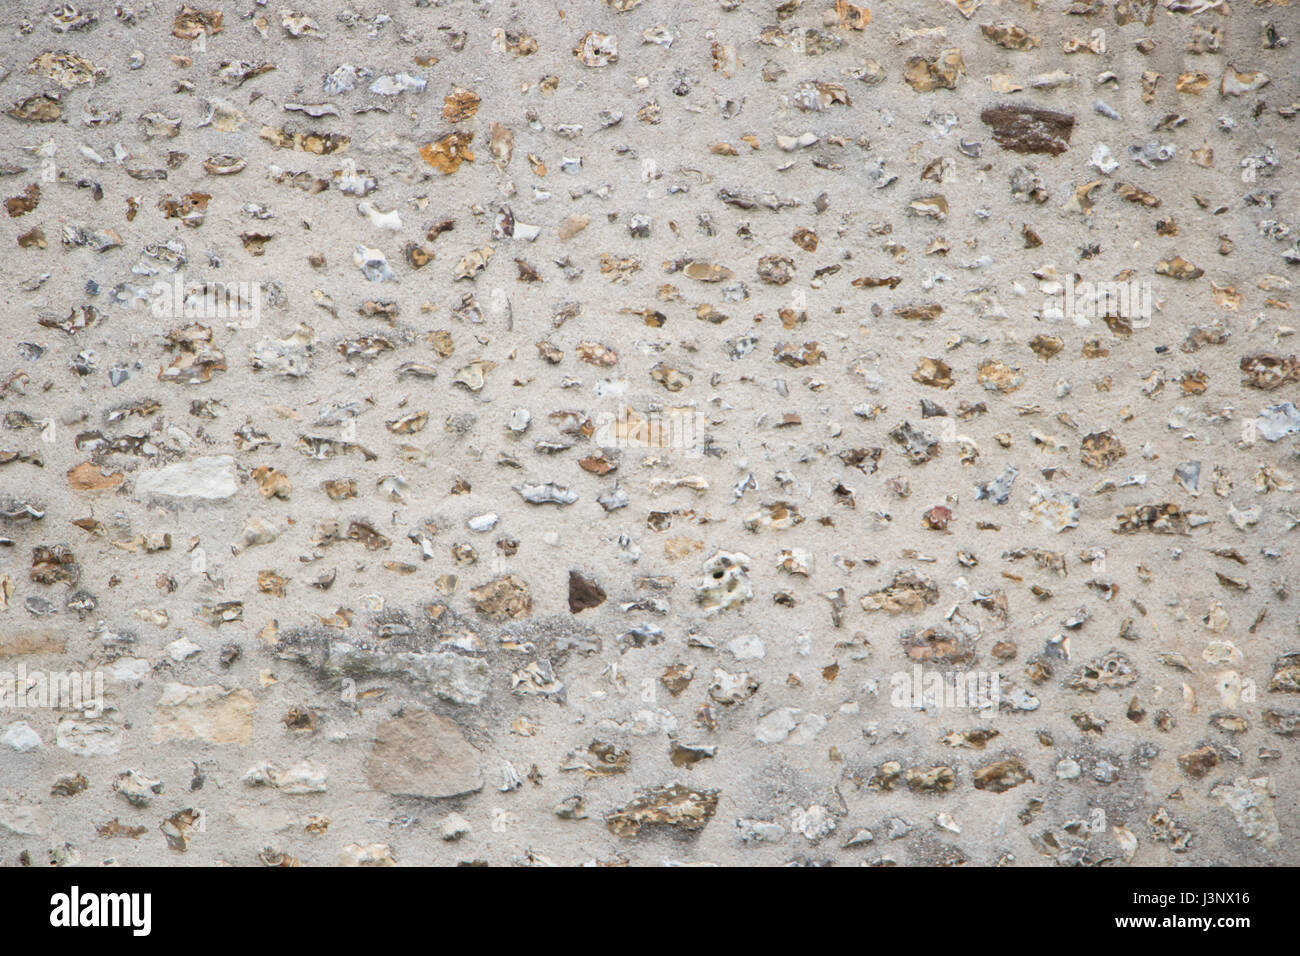 Stone and Cement Wall Texture - Stock Image